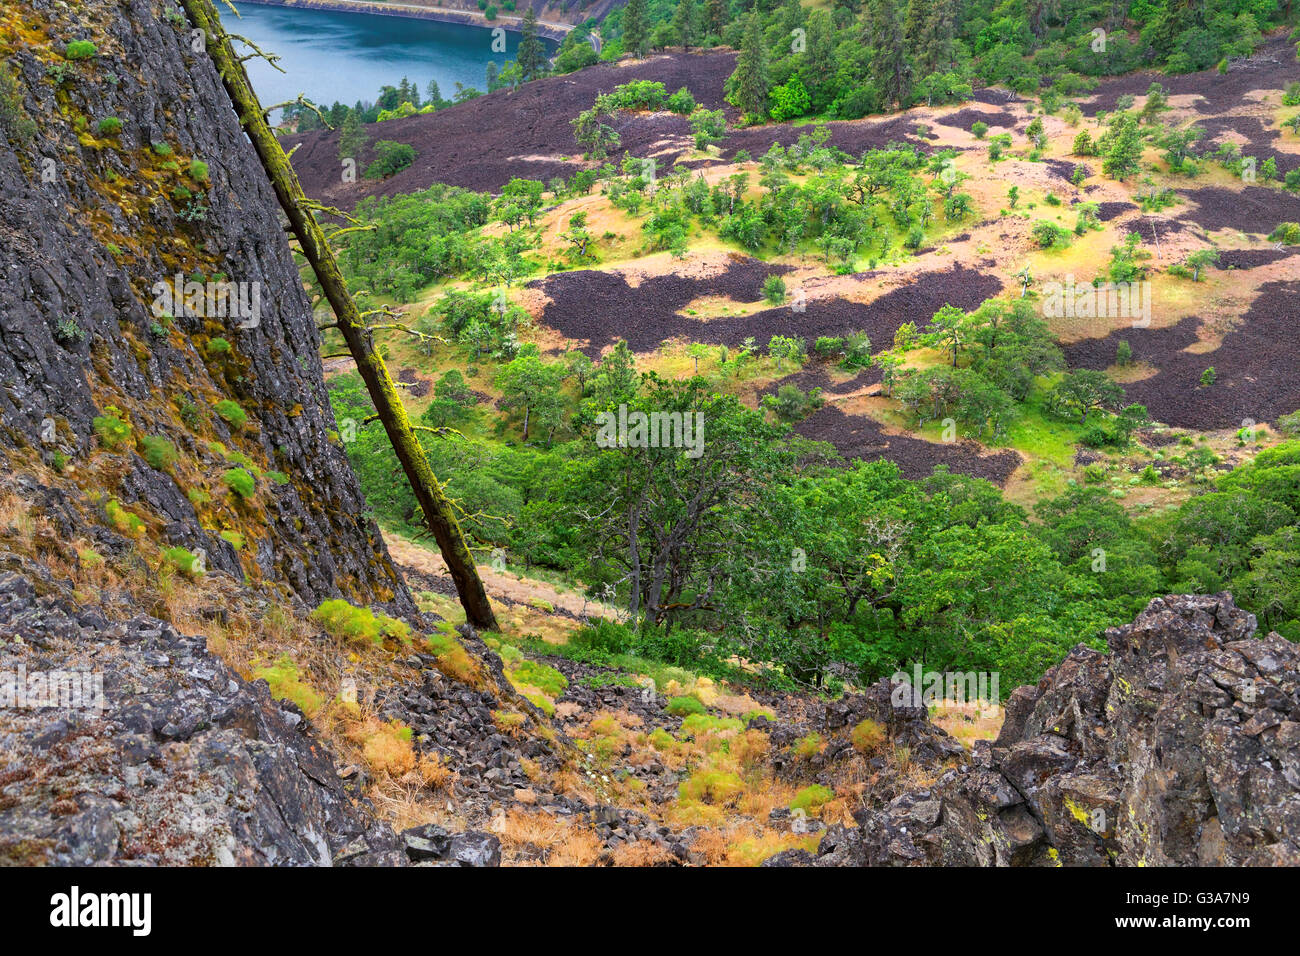 42,136.08857 branchless dead tree below & leaning on rock cliff, background of oak trees & lava in valley, - Stock Image